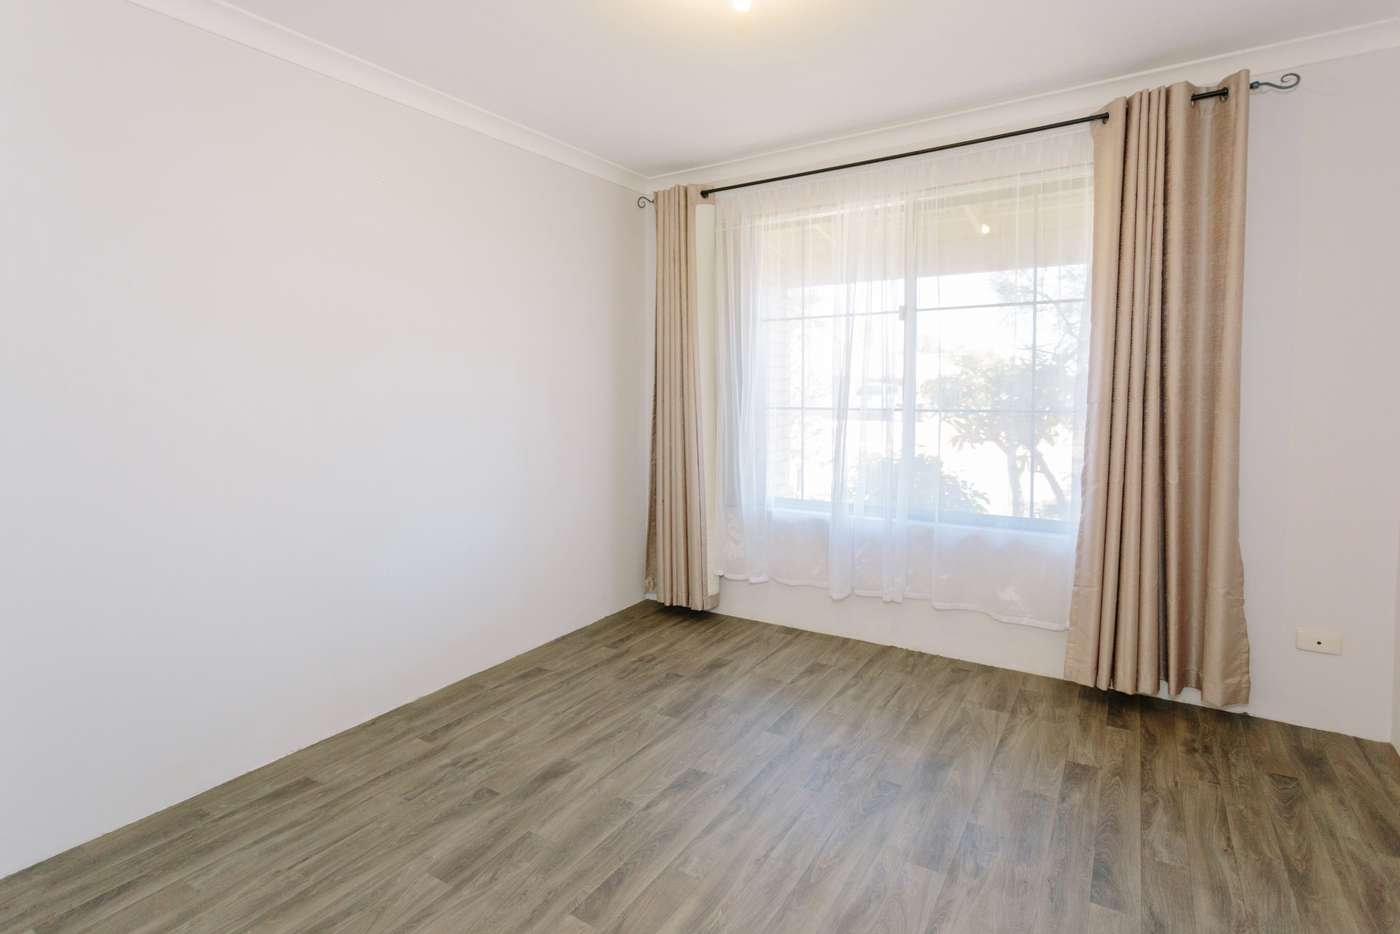 Seventh view of Homely house listing, 45 Amos Road, Wanneroo WA 6065